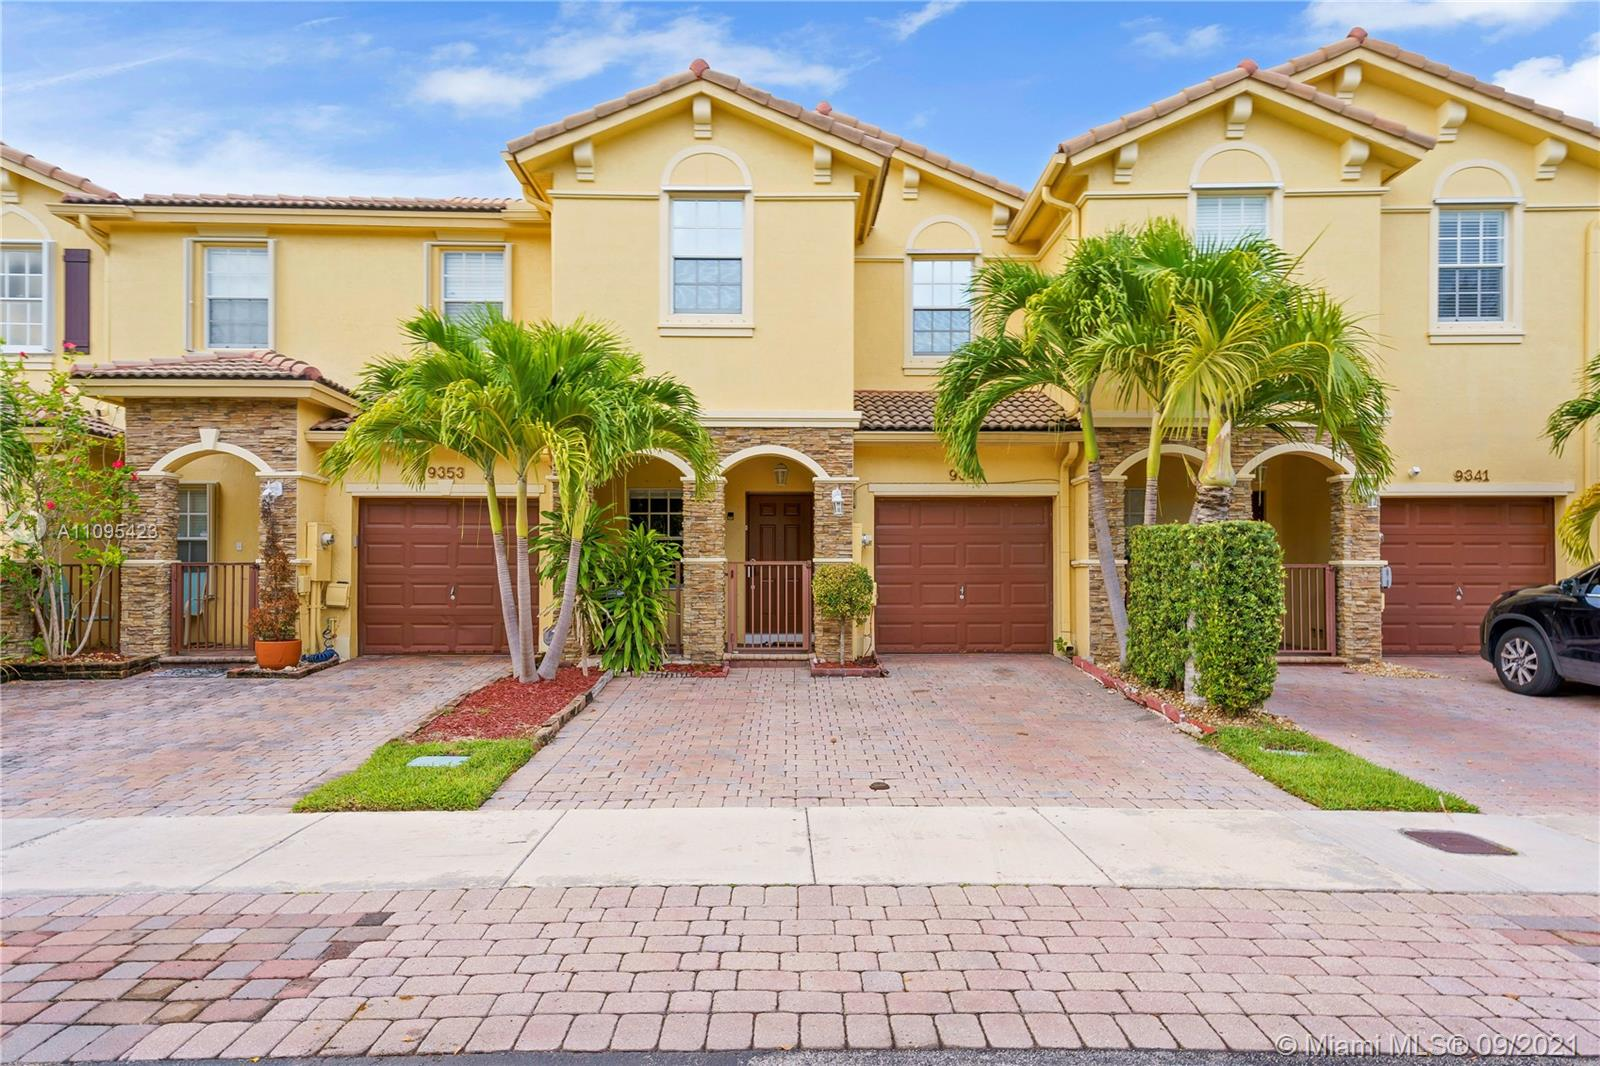 Beautiful two story remodeled townhome in Cutler Bay near Black point Marina where very popular restaurants such as Red Fish grill by Chef Adrianne. Fully remodeled 3 bed 3 bath home with open concept. Spacious bedrooms with large patio perfect for hosting barbecues with family and friends.